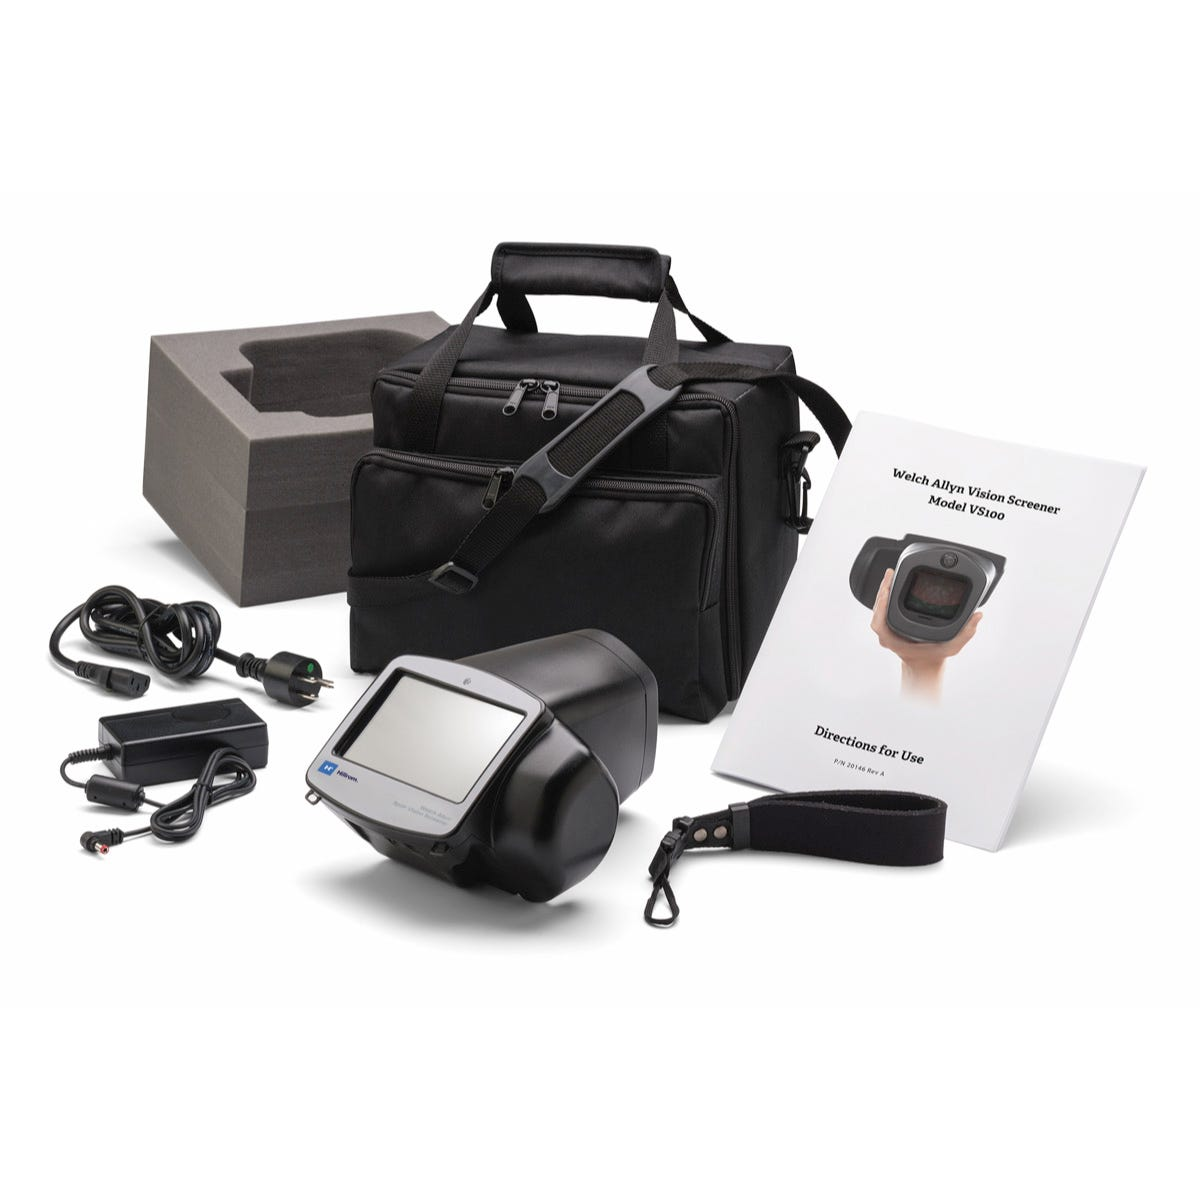 Welch Allyn Spot Vision Screener with Carry Case and a 5-year Partners in Care Warranty